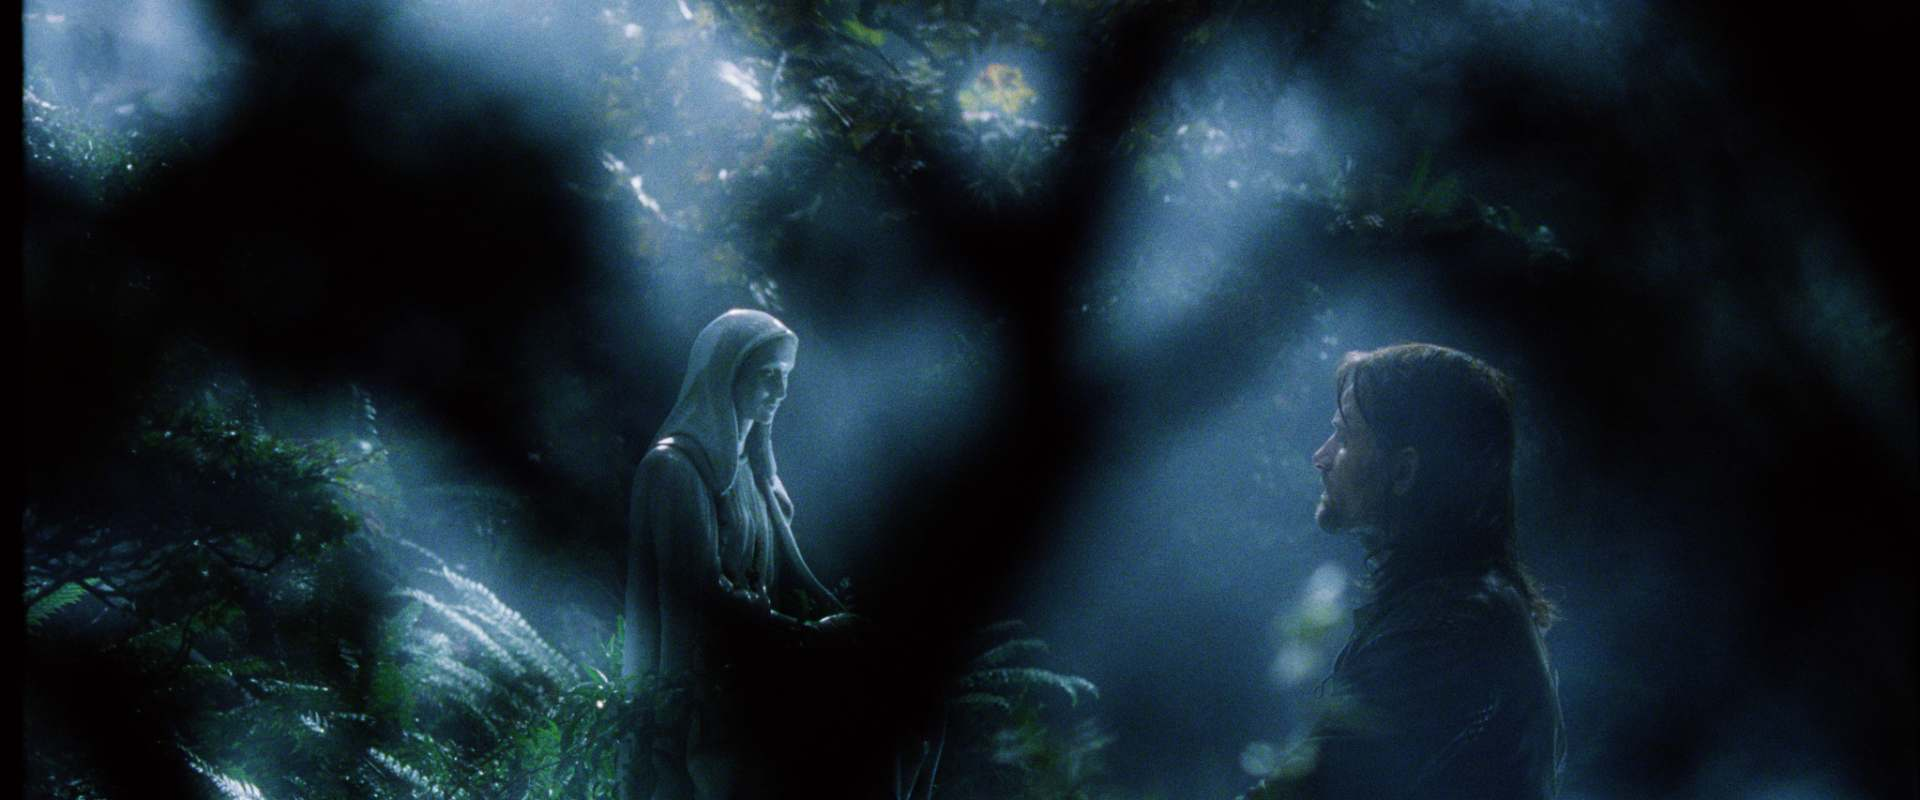 The Lord of the Rings: The Fellowship of the Ring background 2